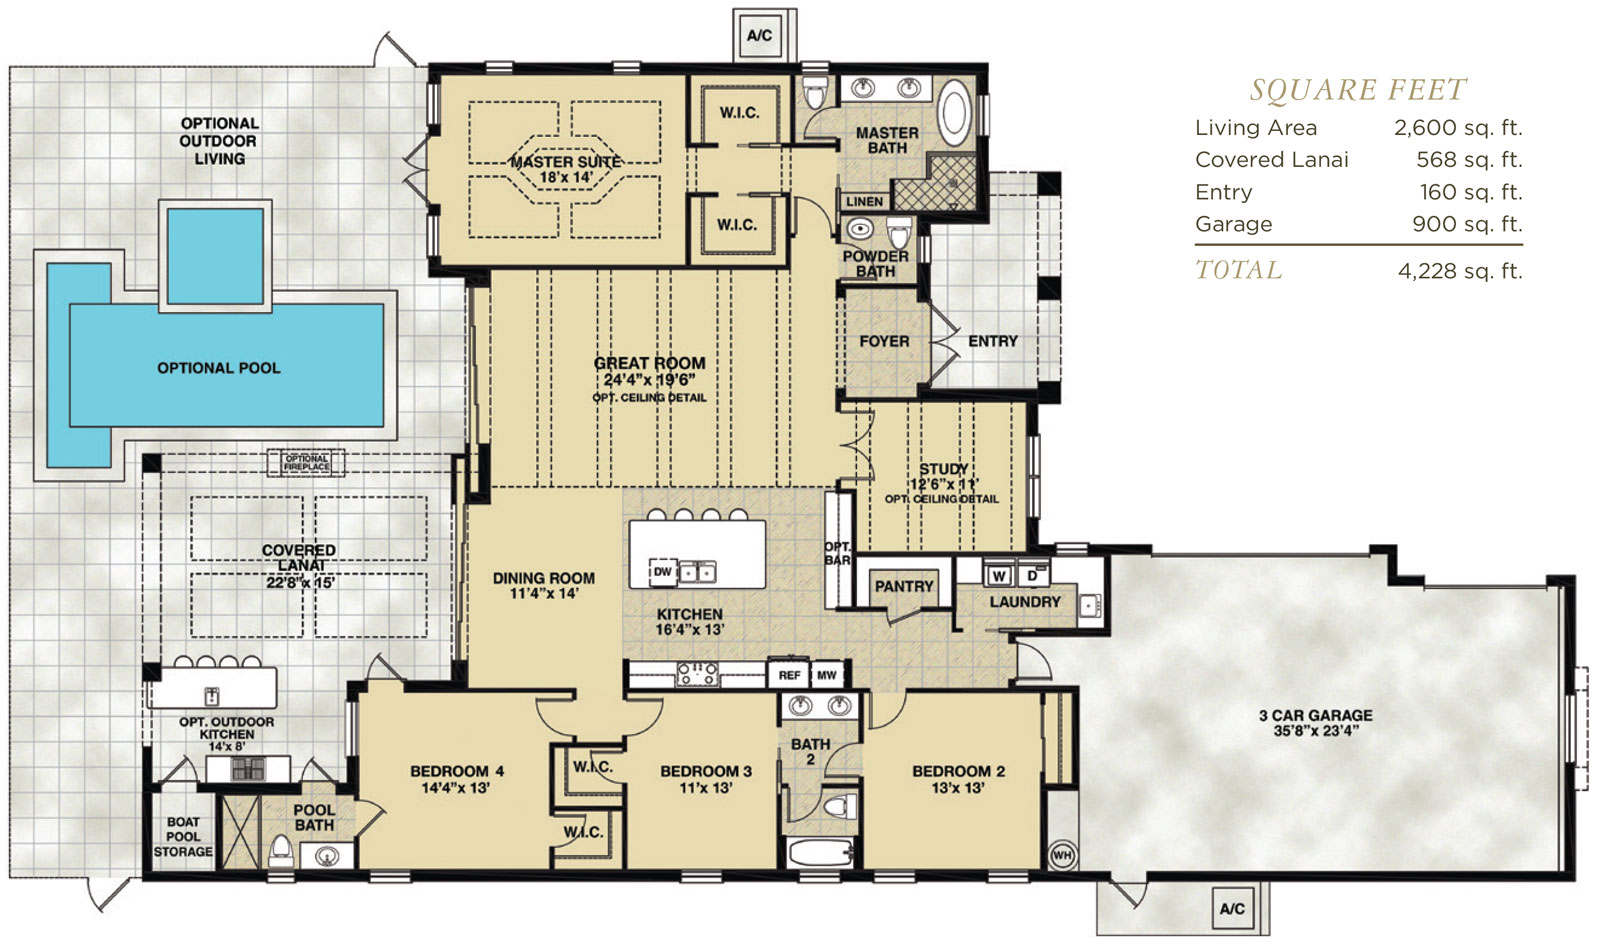 Captiva Floor Plan in Hidden Harbor Estates, Fort Myers, Stock Construction, Four Bedroom, Three and One Half Bath, Great Room, Dining Room, Study, Outdoor Living, 3-Car Garage